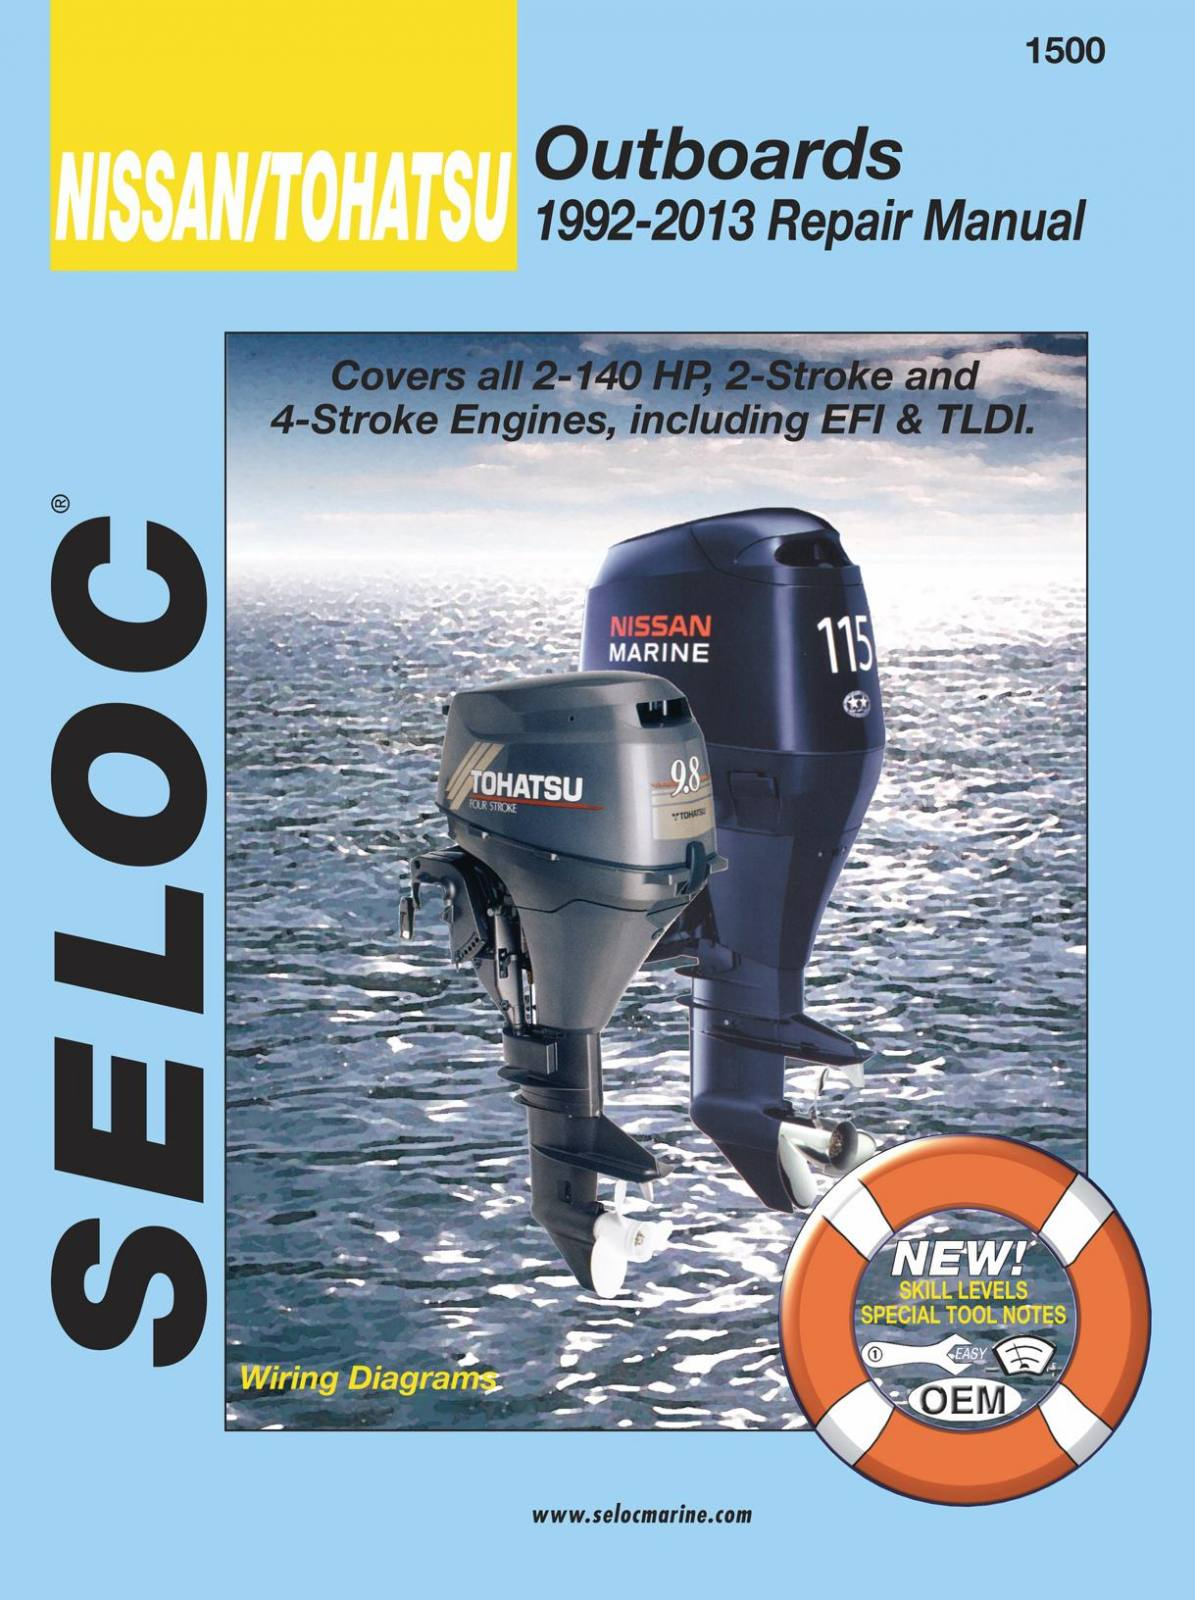 Marine Manuals for Nissan/Tohatsu Outboards for sale in New Smyrna Beach,  FL | Diamond Motors & Marine (386) 424-9000